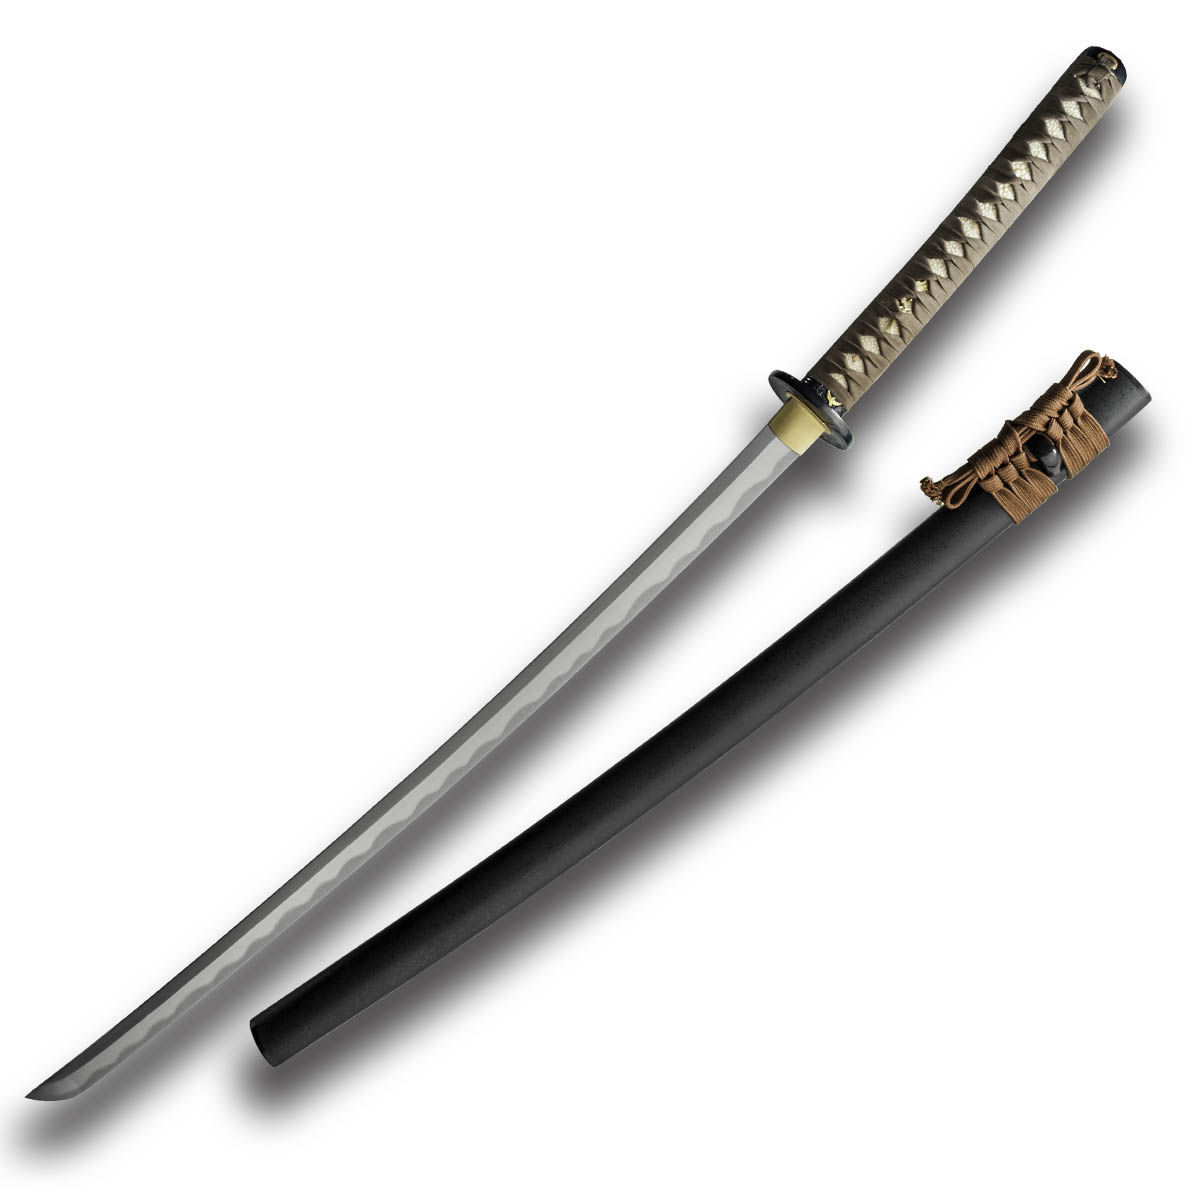 Date Masamune Katana by Paul Chen / Hanwei has forged steel blade, same with suede wrap, decorative menuki and tsuba